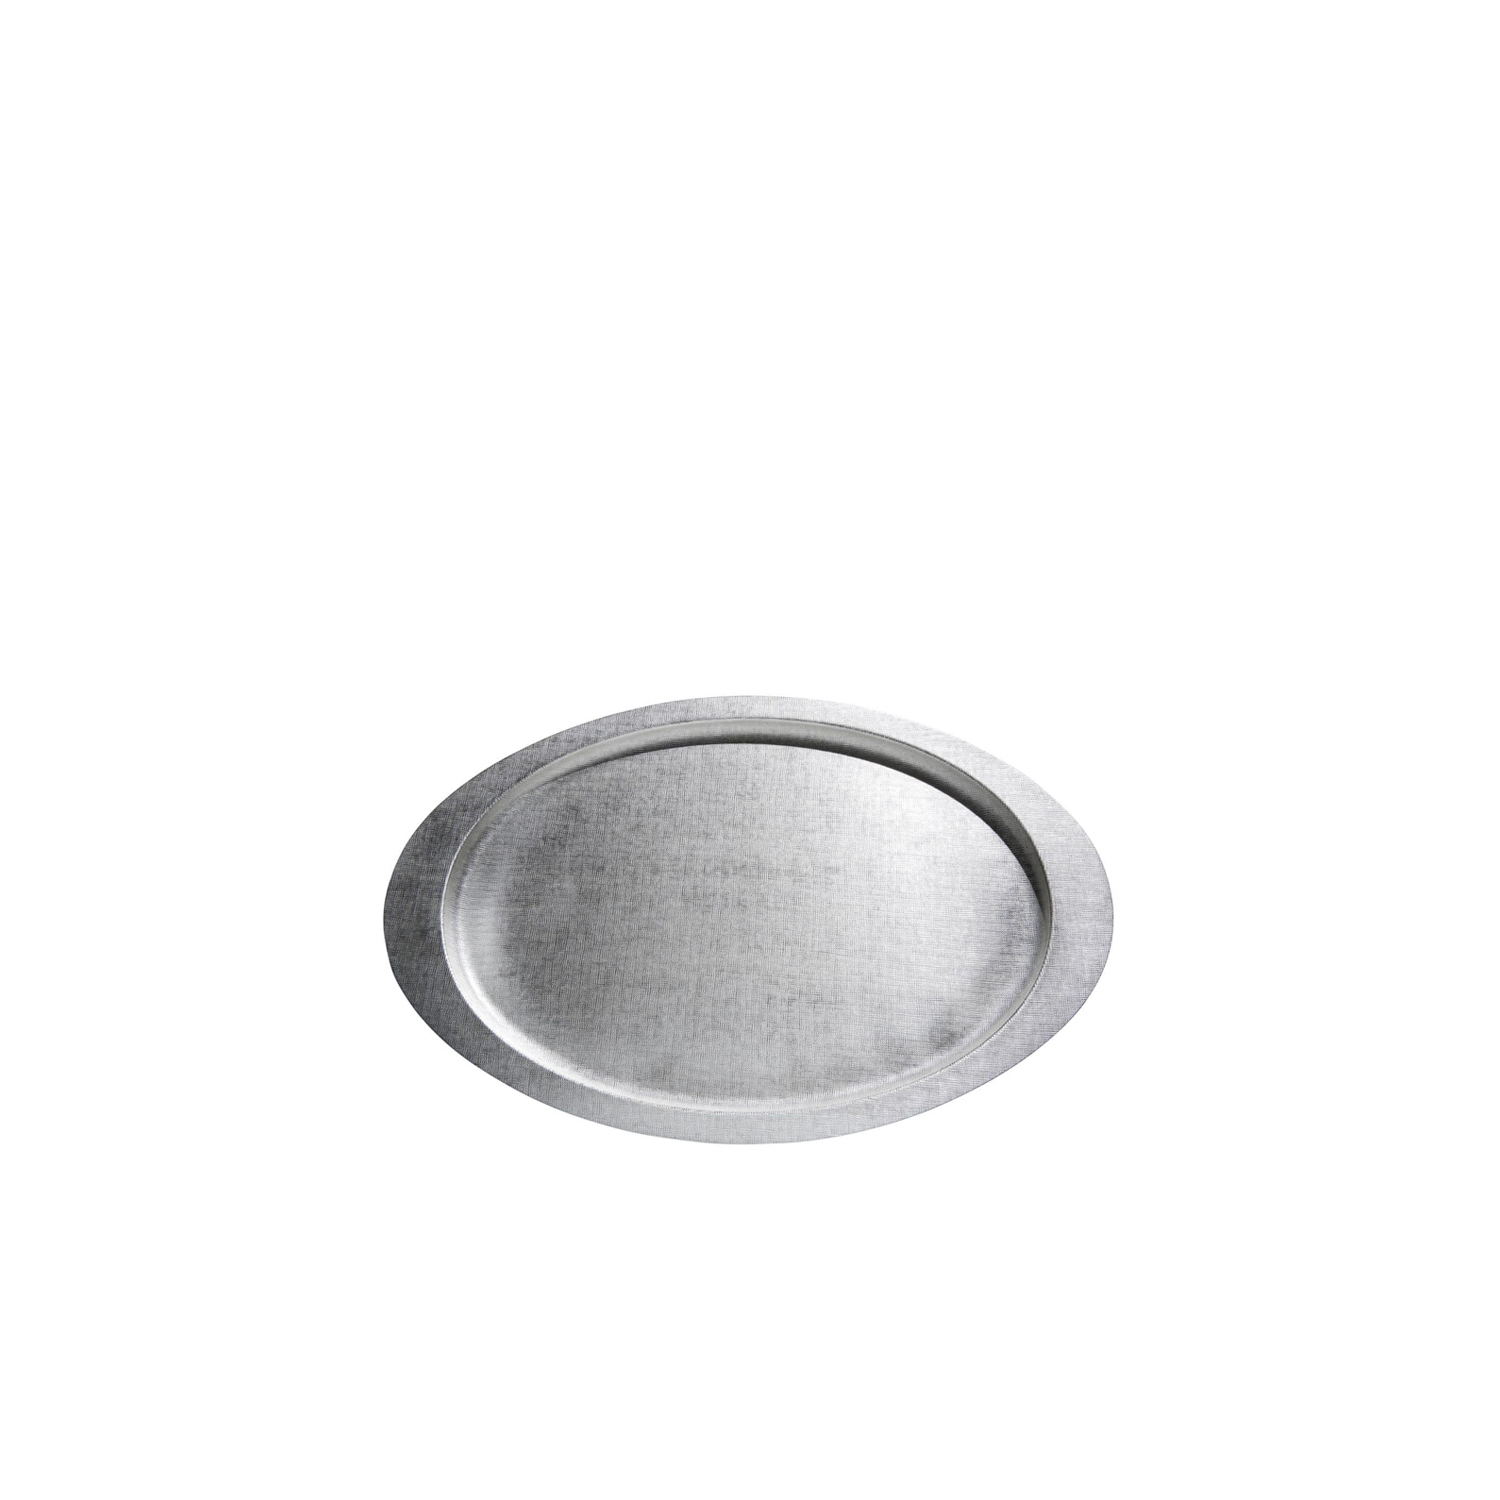 """Velvet Oval Tray  - Silver-plated oval tray characterized by the particular and elegant hammering """"Velvet"""".  It is embellished with a unique, hand-hammered surface texture with a velvety feel. 